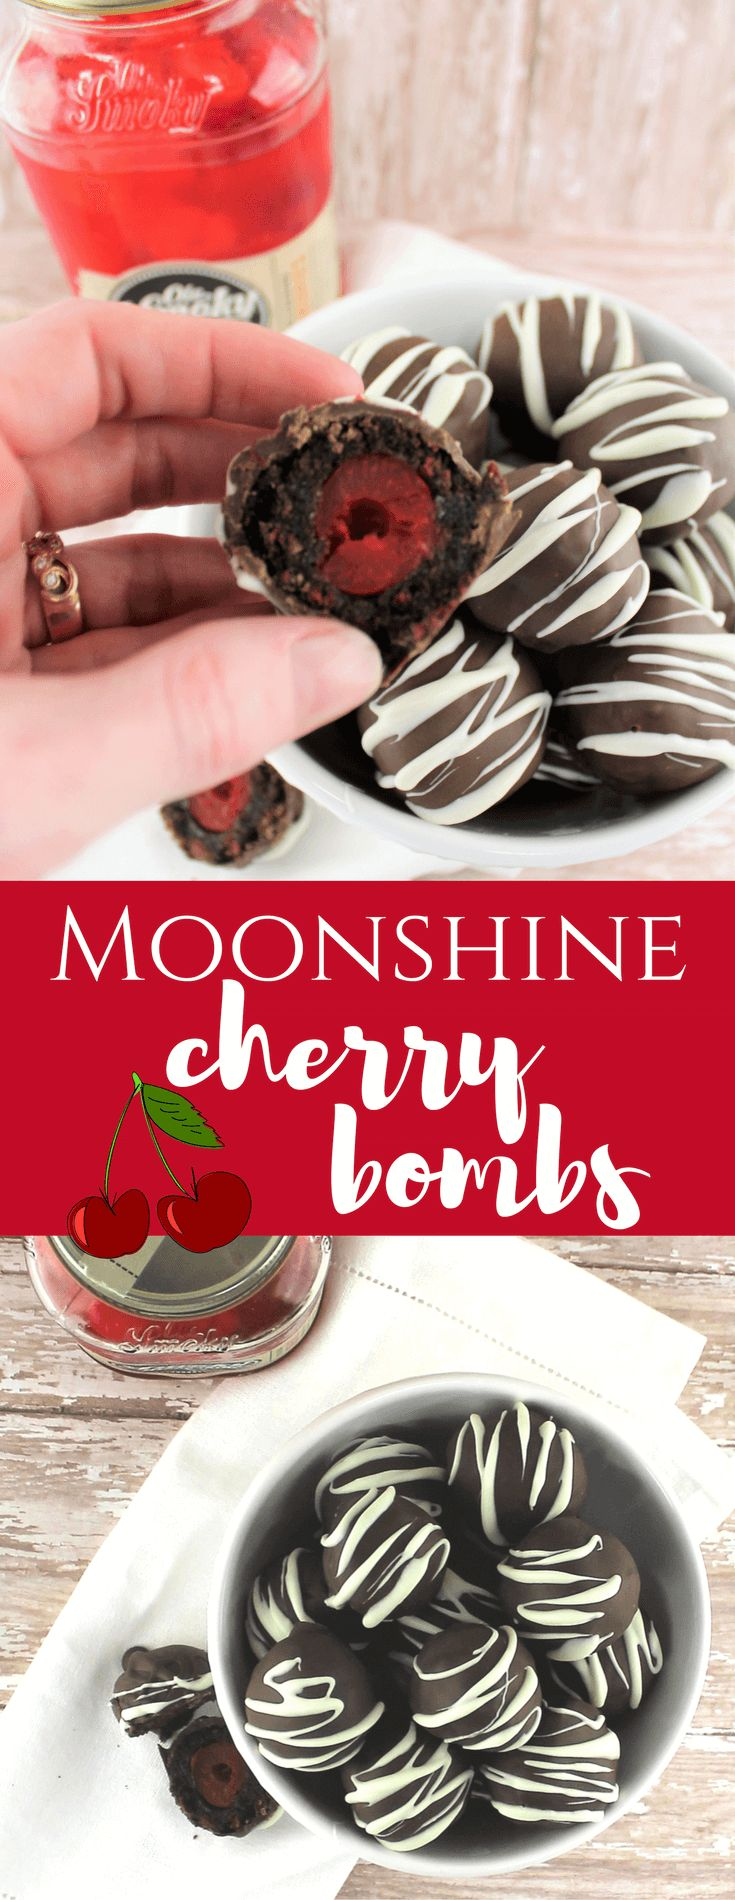 Moonshine Cherry Bombs #moonshine #cherrybomb #chocolate